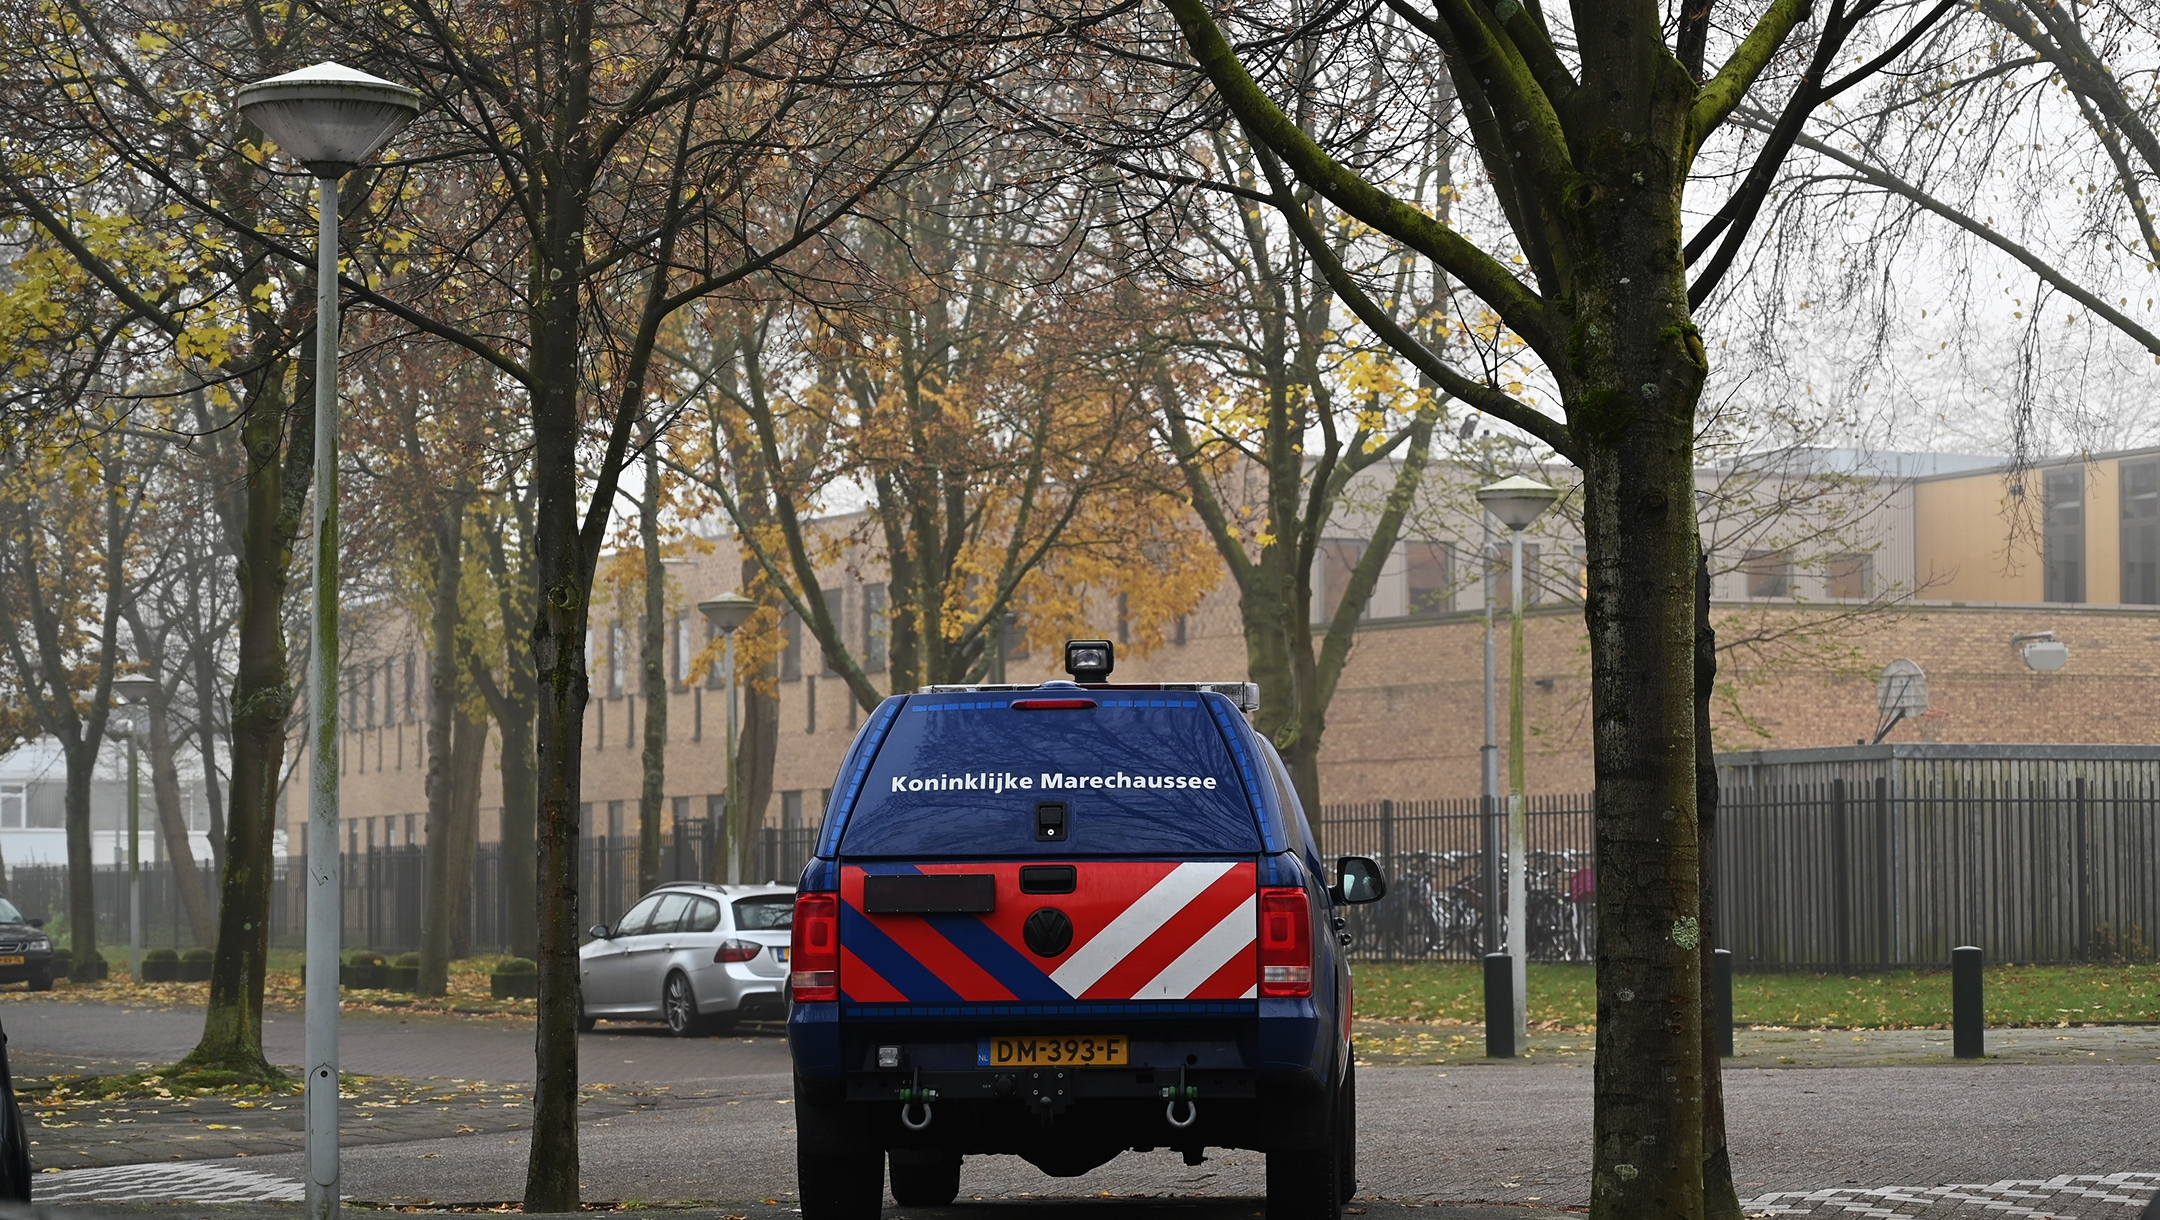 Dutch parliament votes to fight anti-Semitism, but against funding Jewish security costs